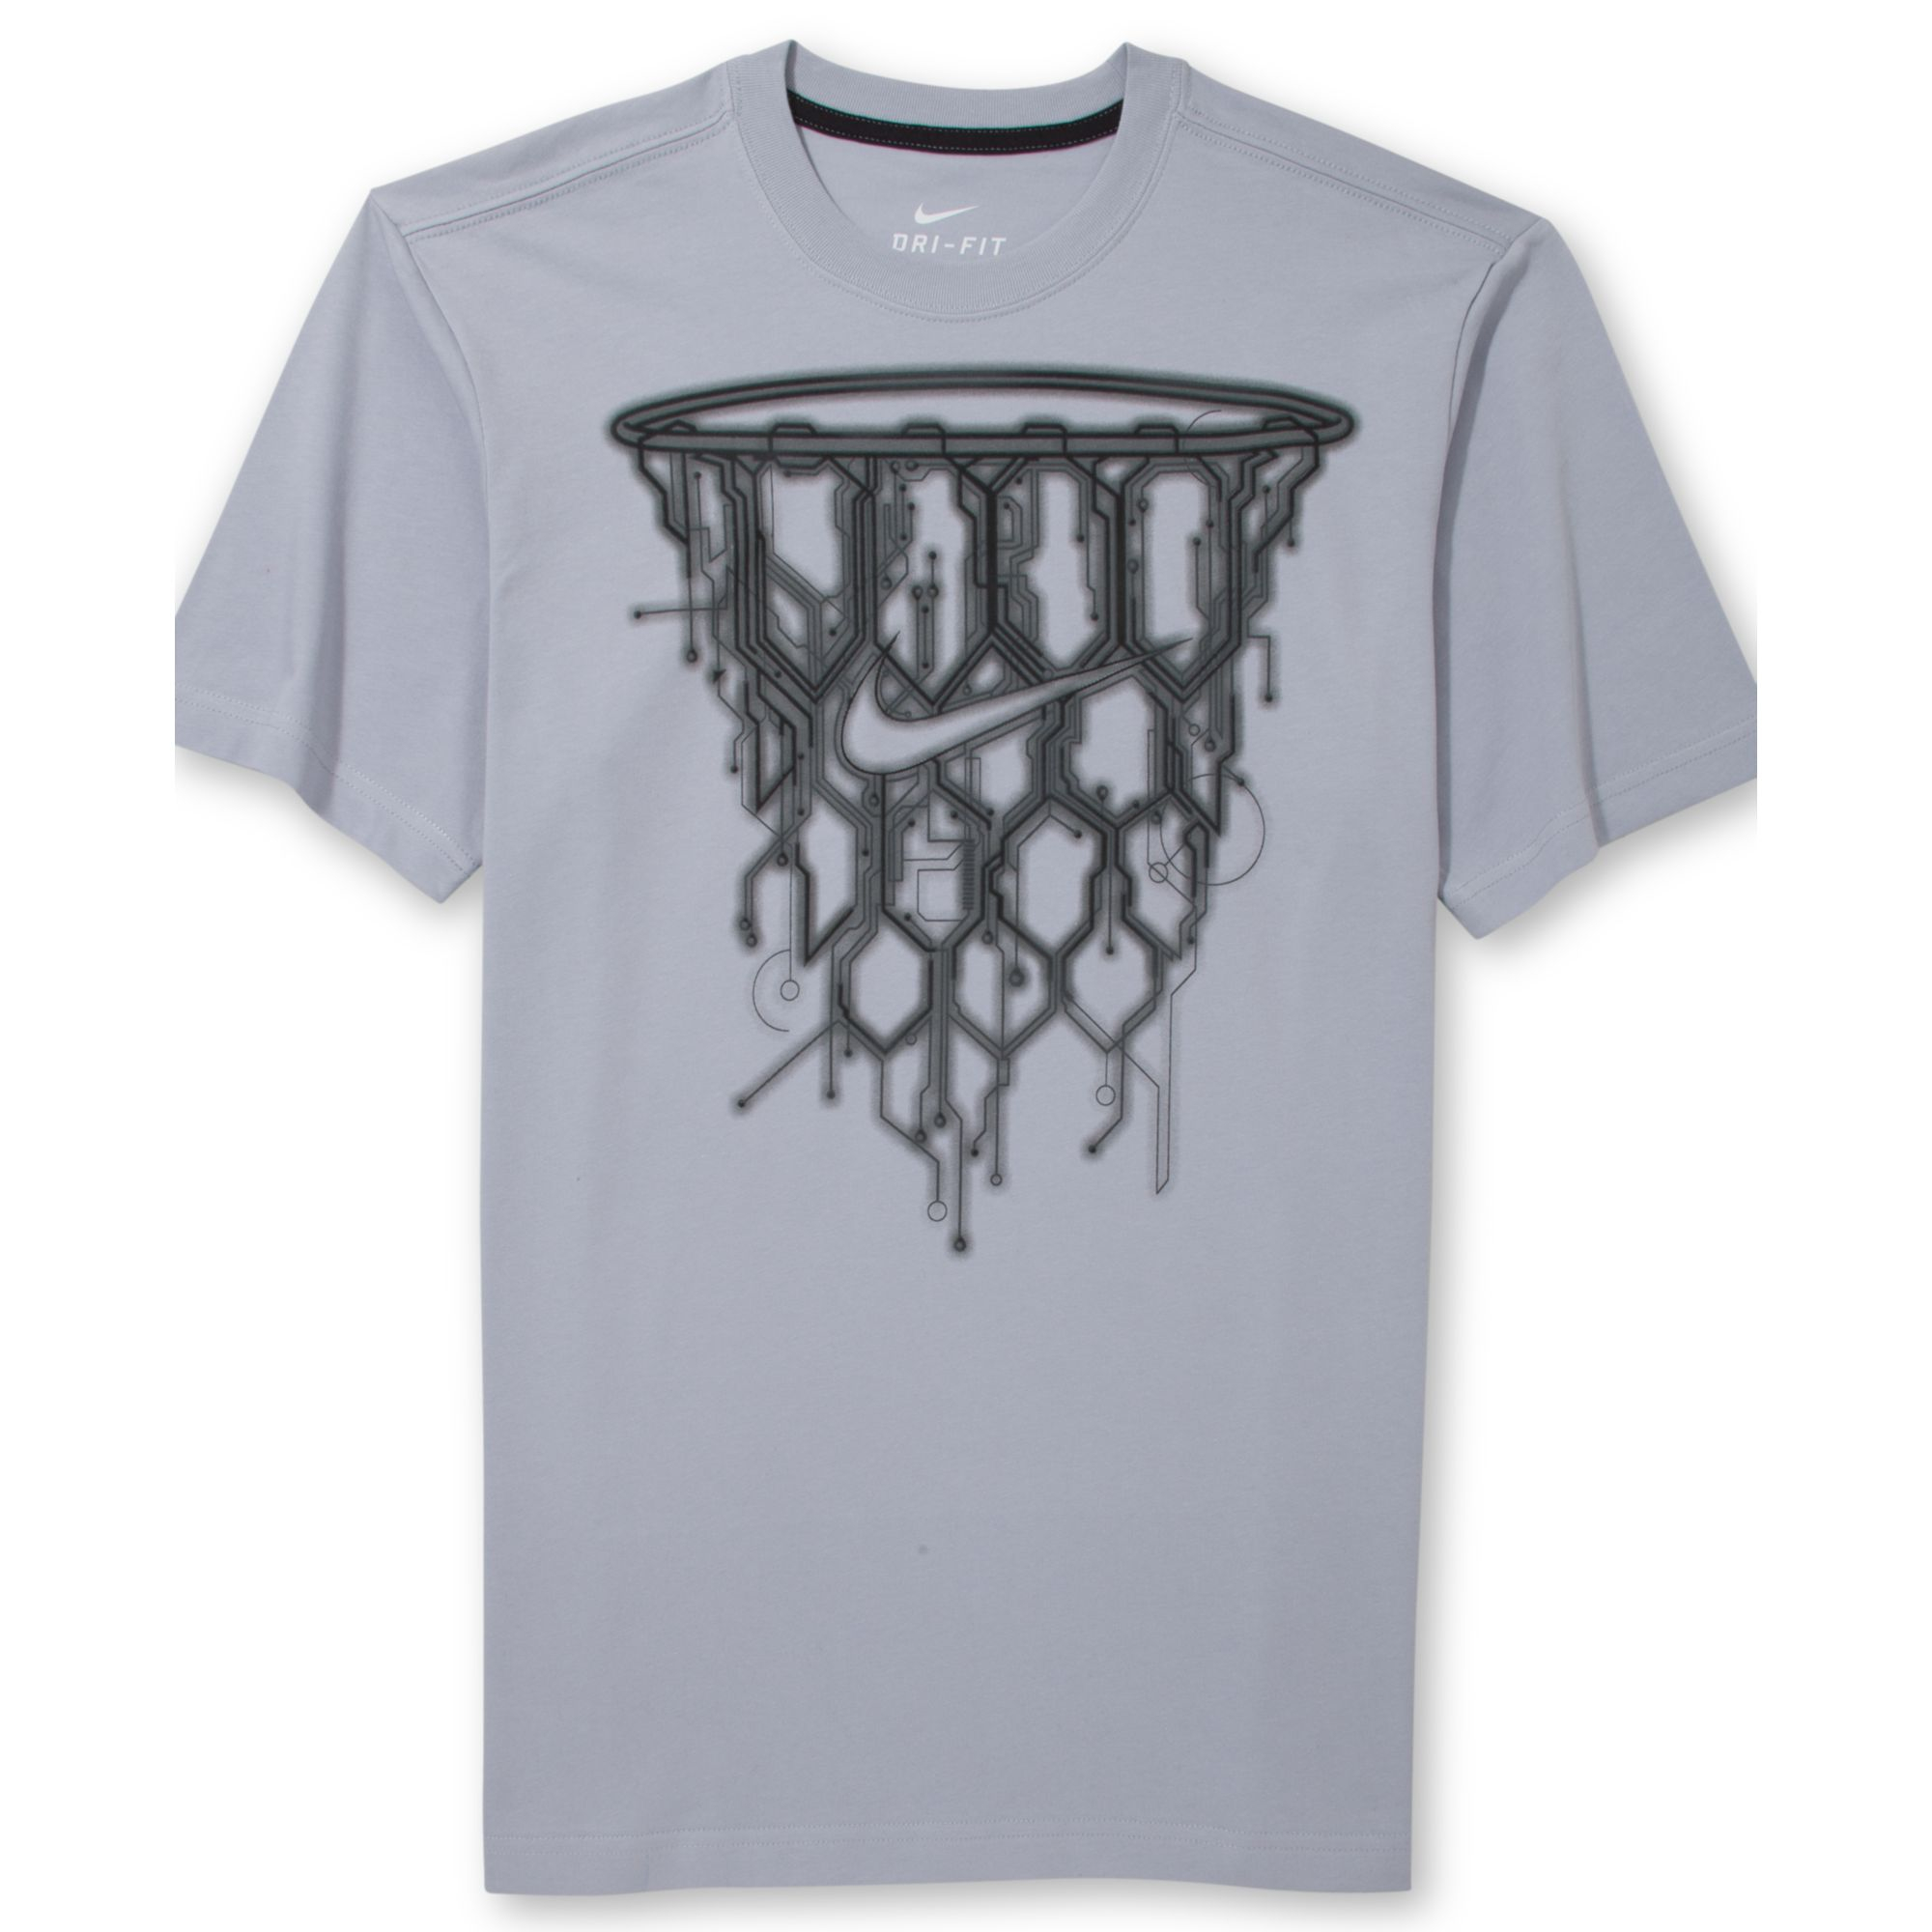 nike basketball net graphic tshirt in gray for men lyst. Black Bedroom Furniture Sets. Home Design Ideas